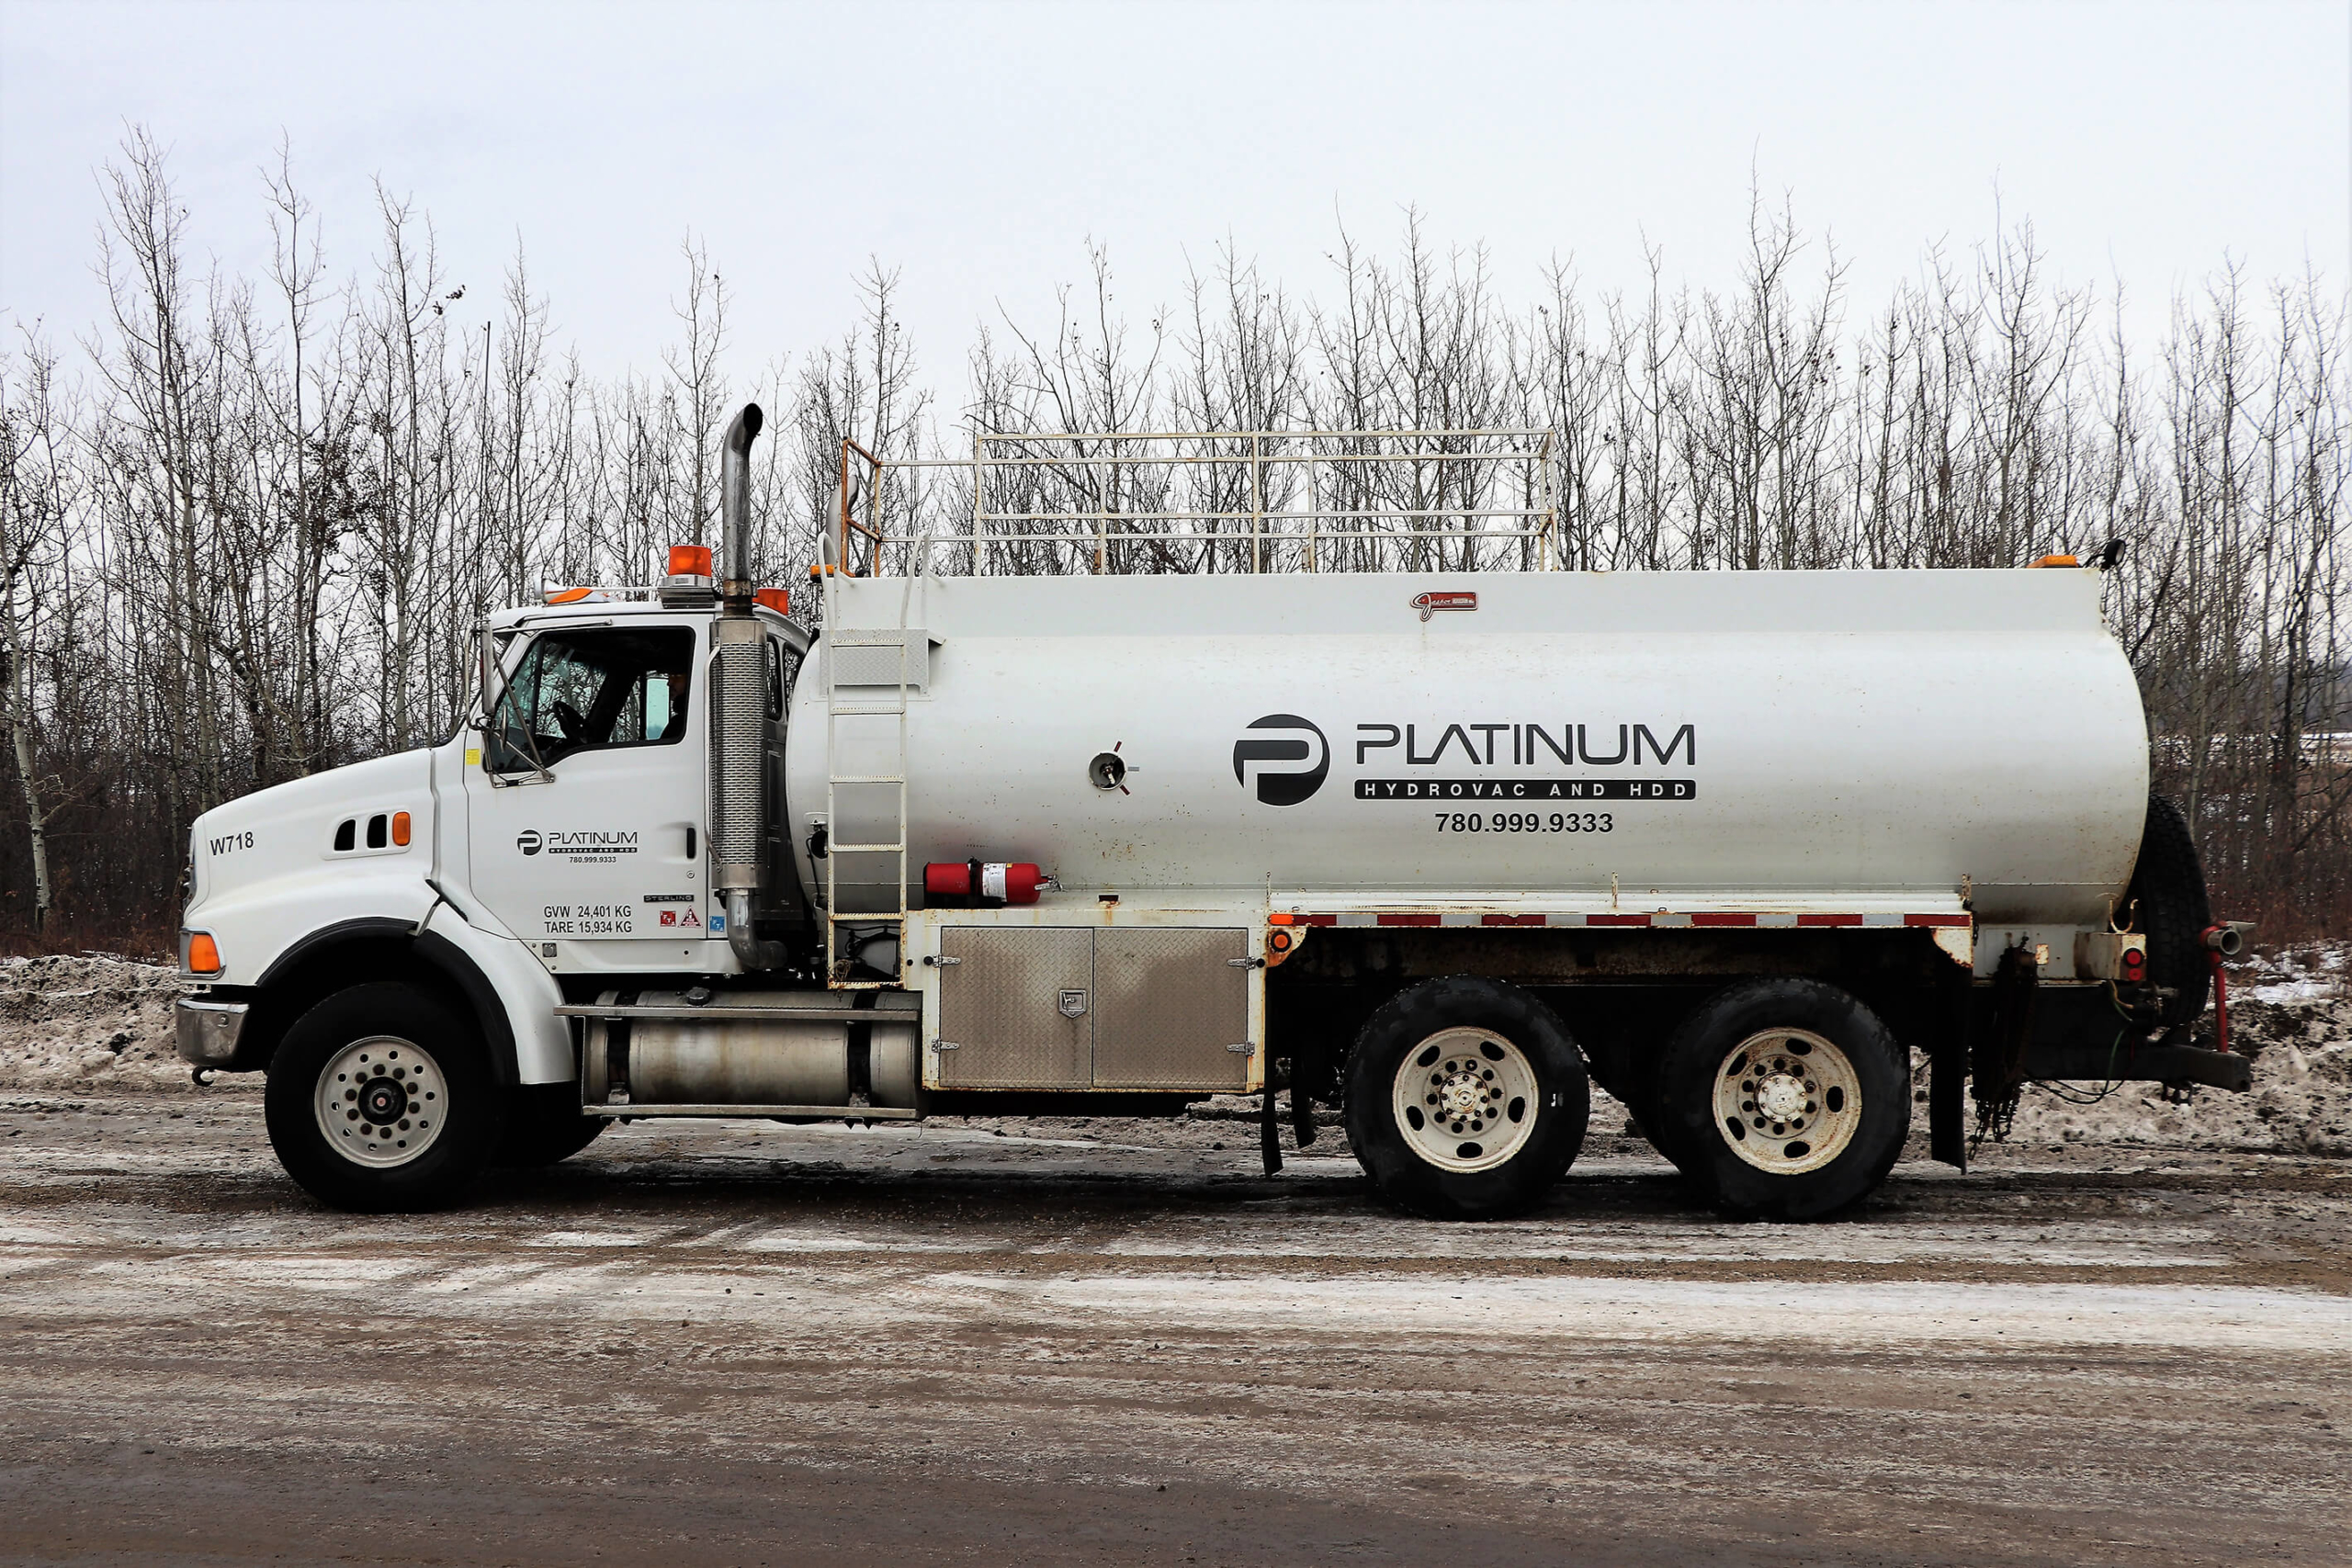 A white platinum water truck parked on the road